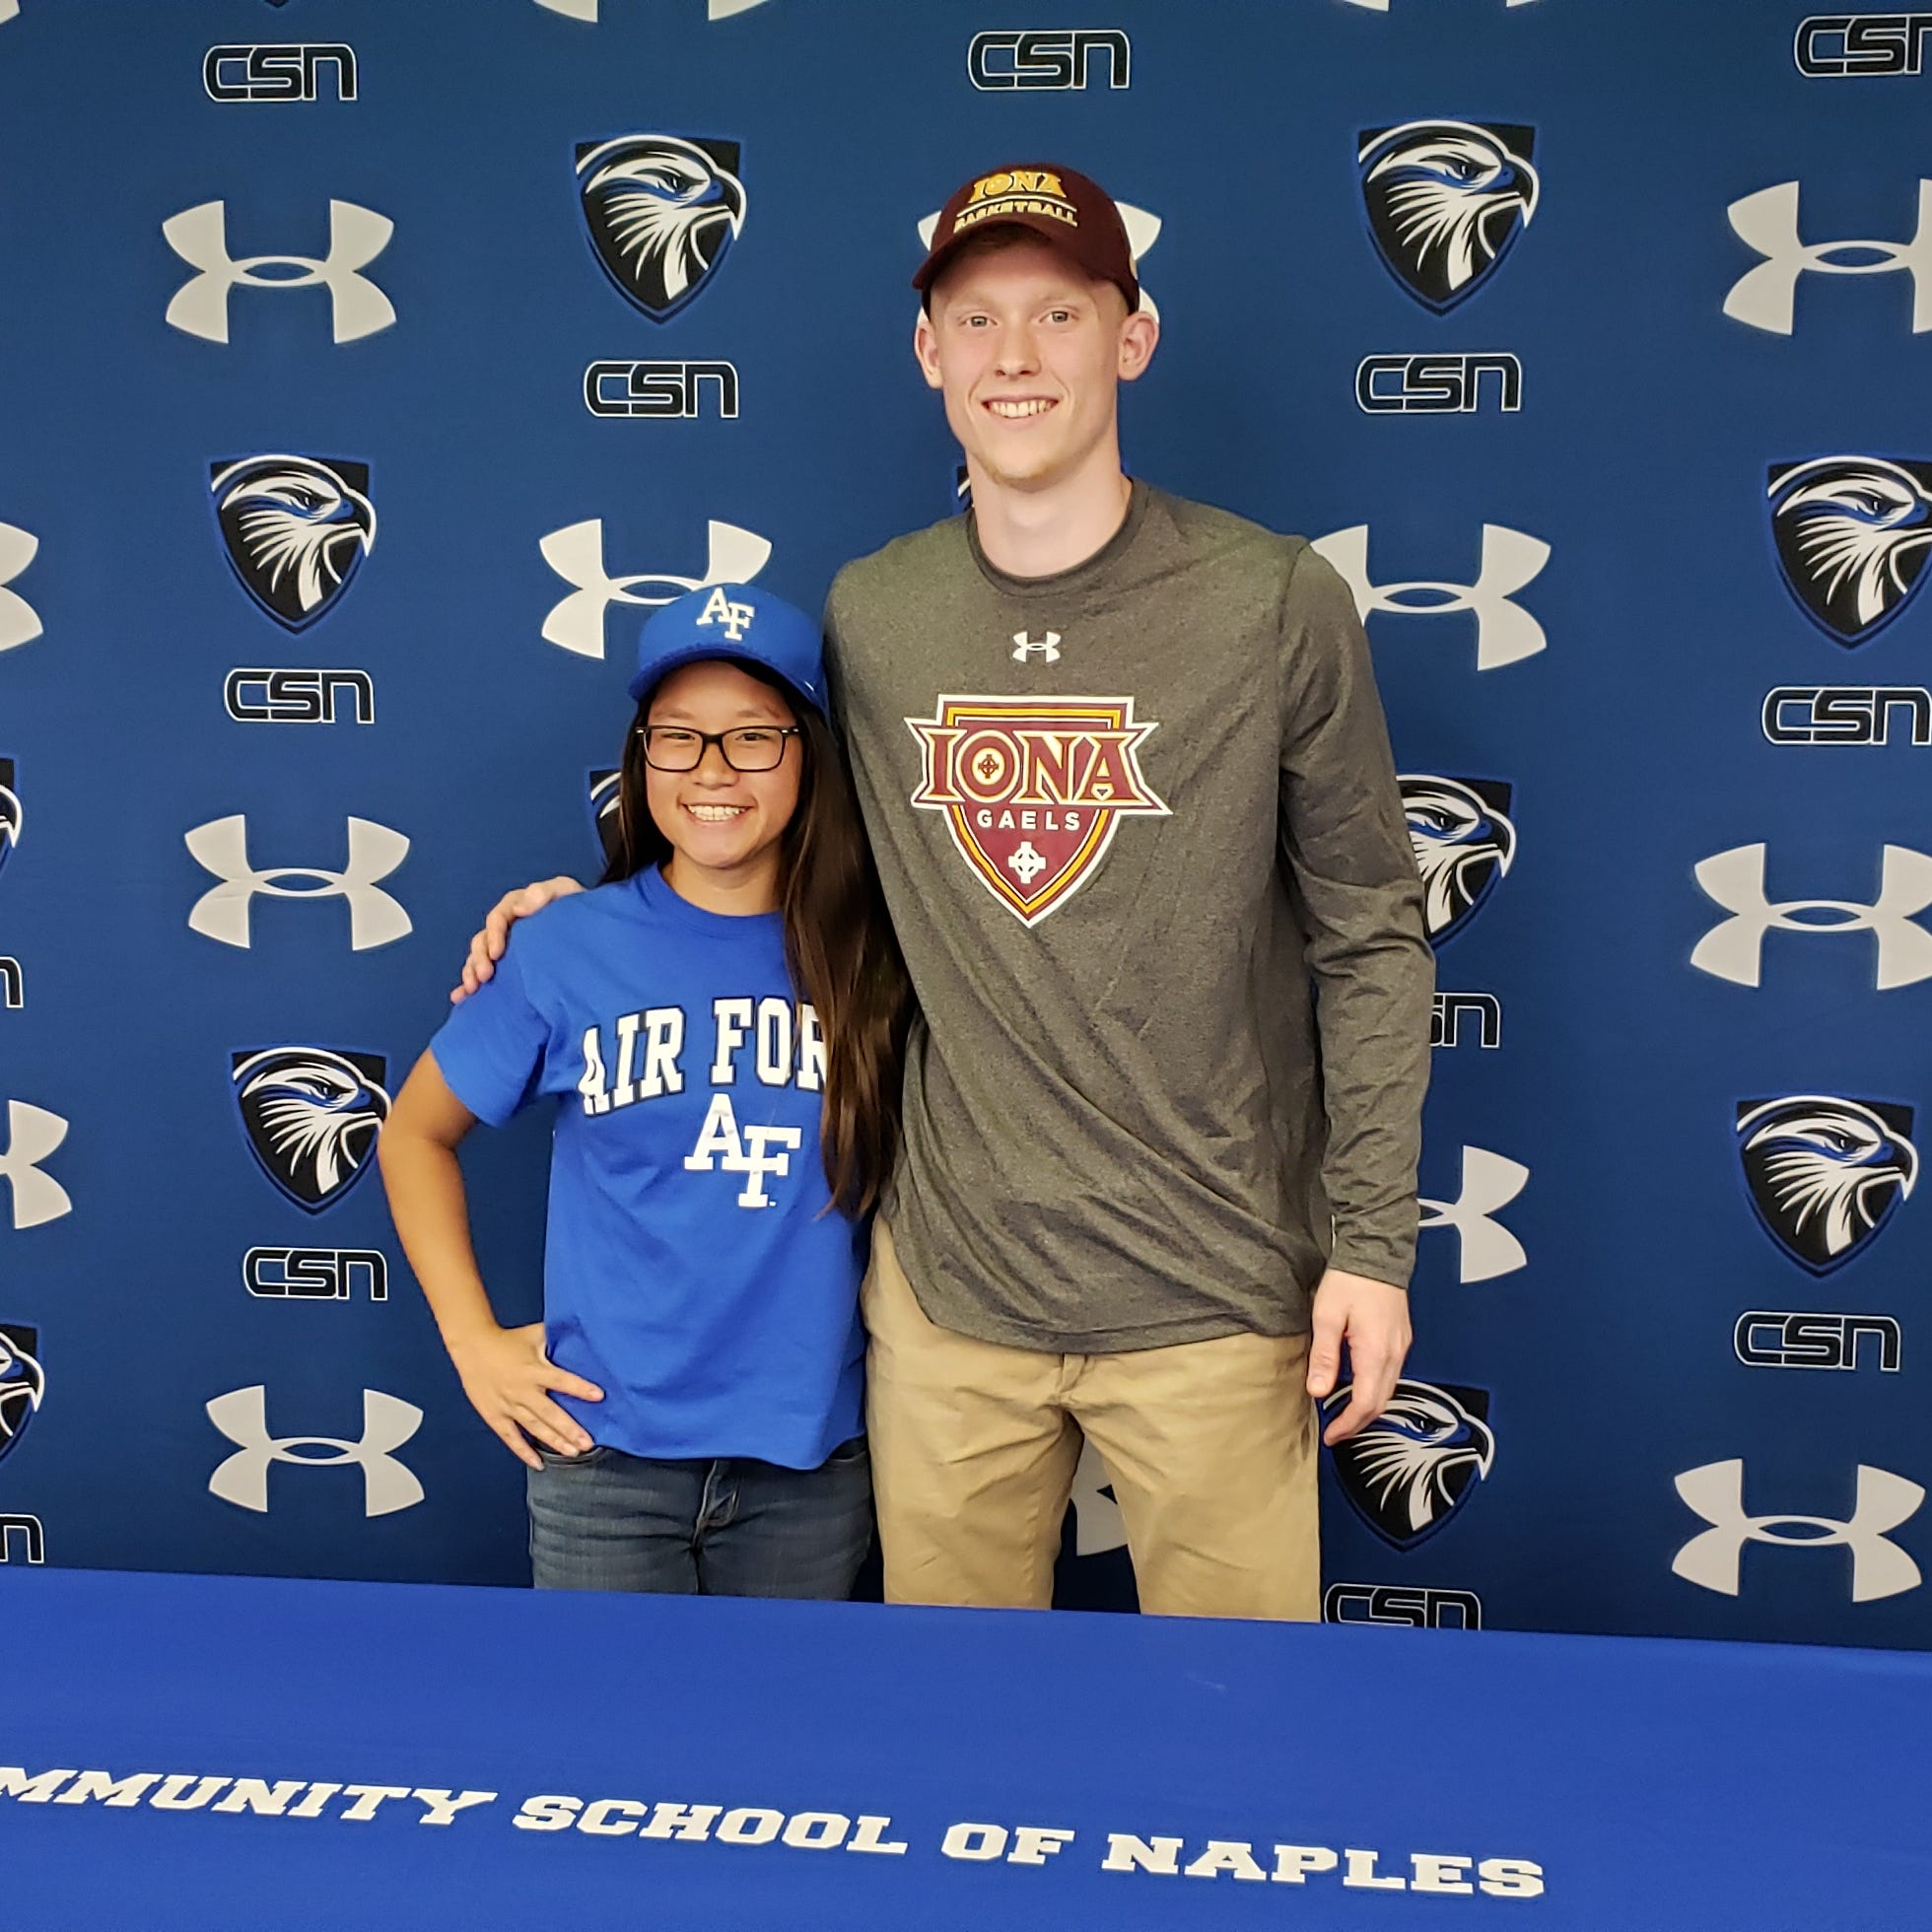 Signing Day: CSN's Parker Weiss to play basketball at Iona, Carr headed to Air Force